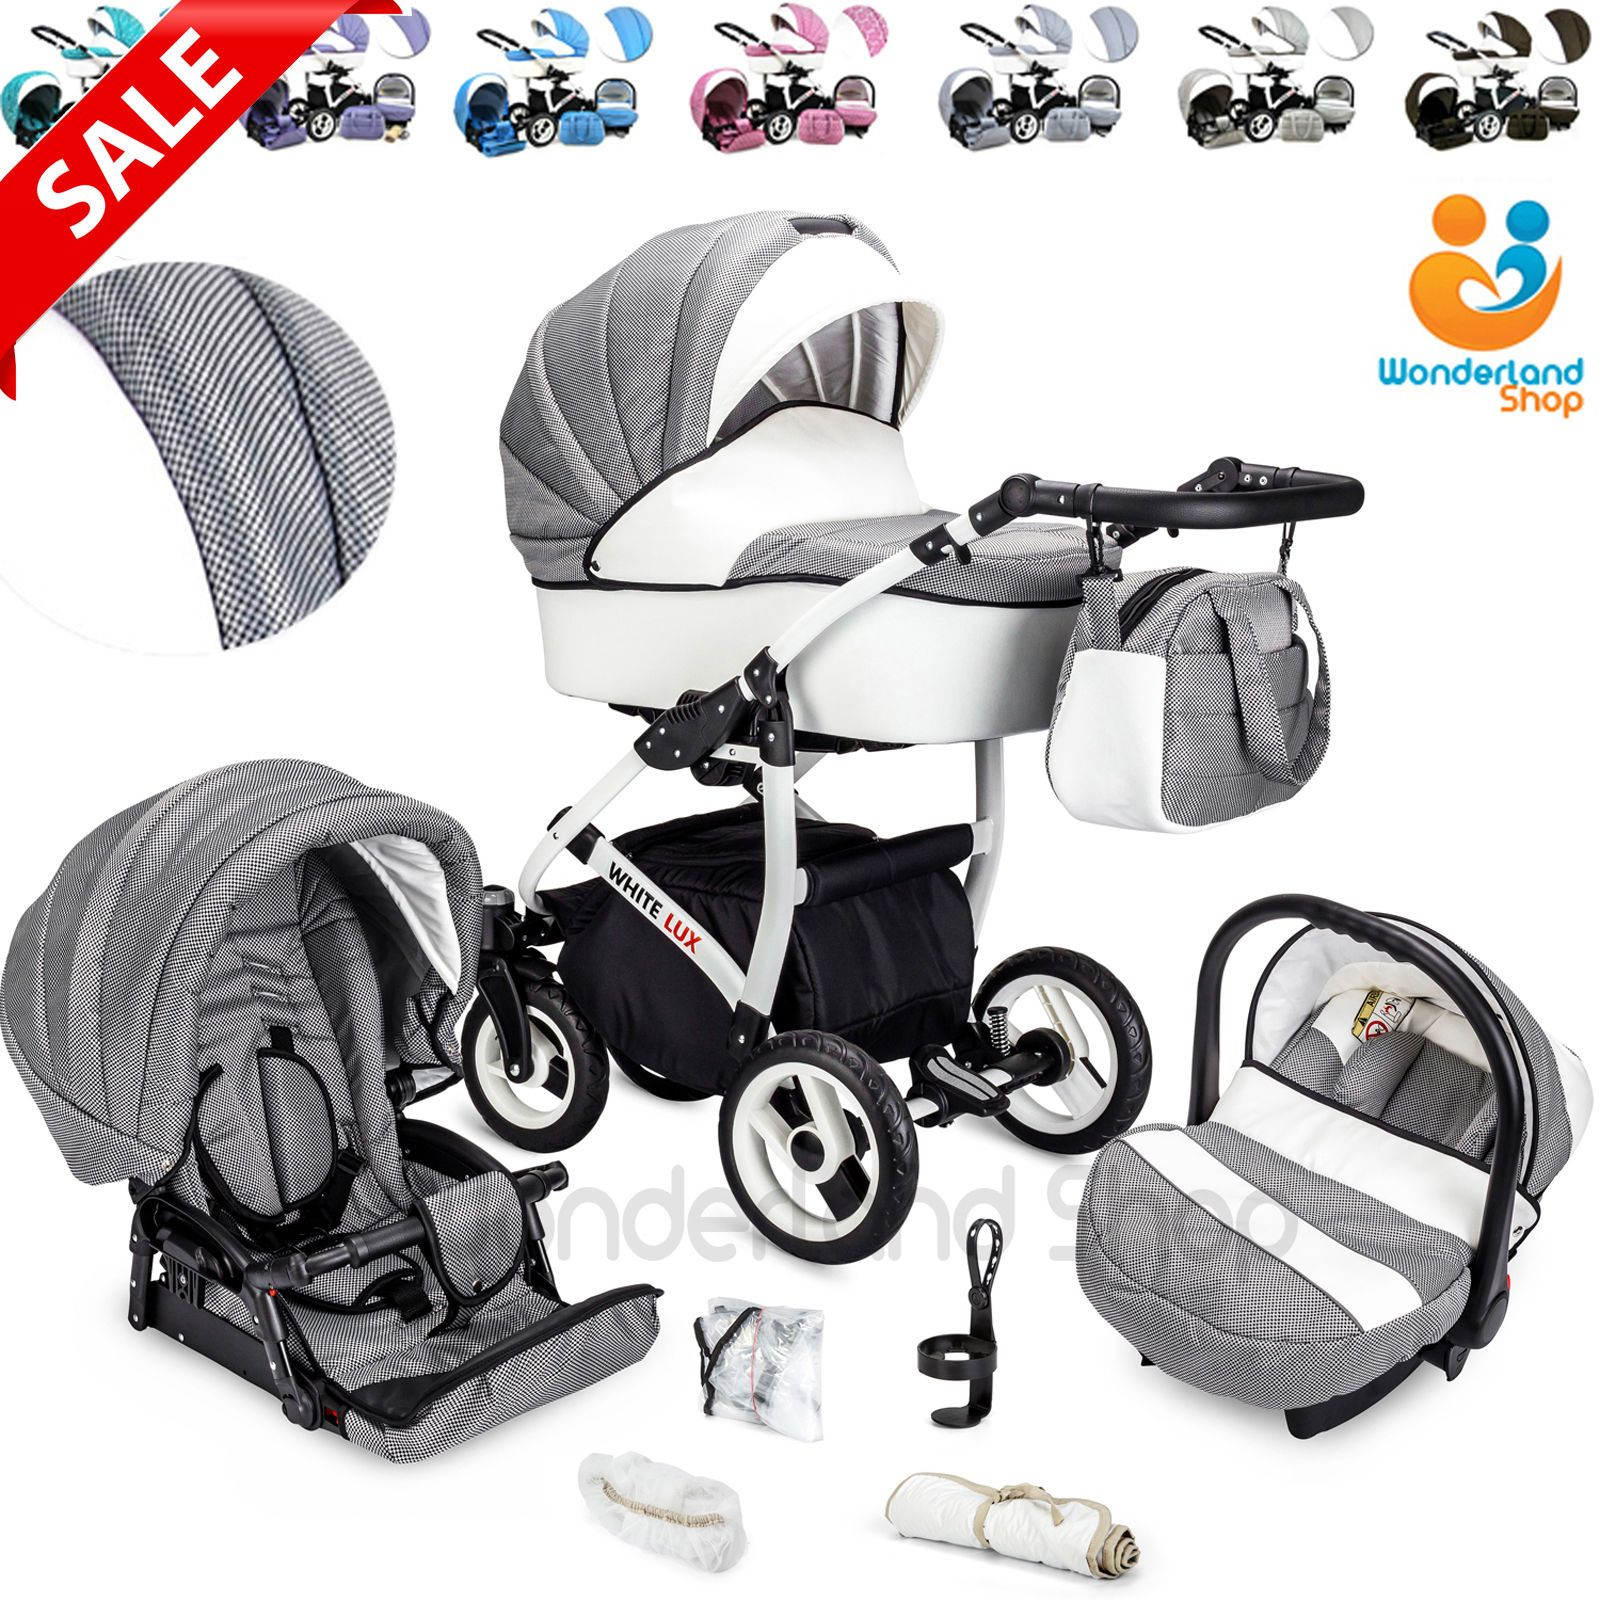 Baby Pram Stroller Pushchair + Car Seat Carrycot Buggy Travel System Pin By Derrick Benson On Strollers Baby Prams Travel